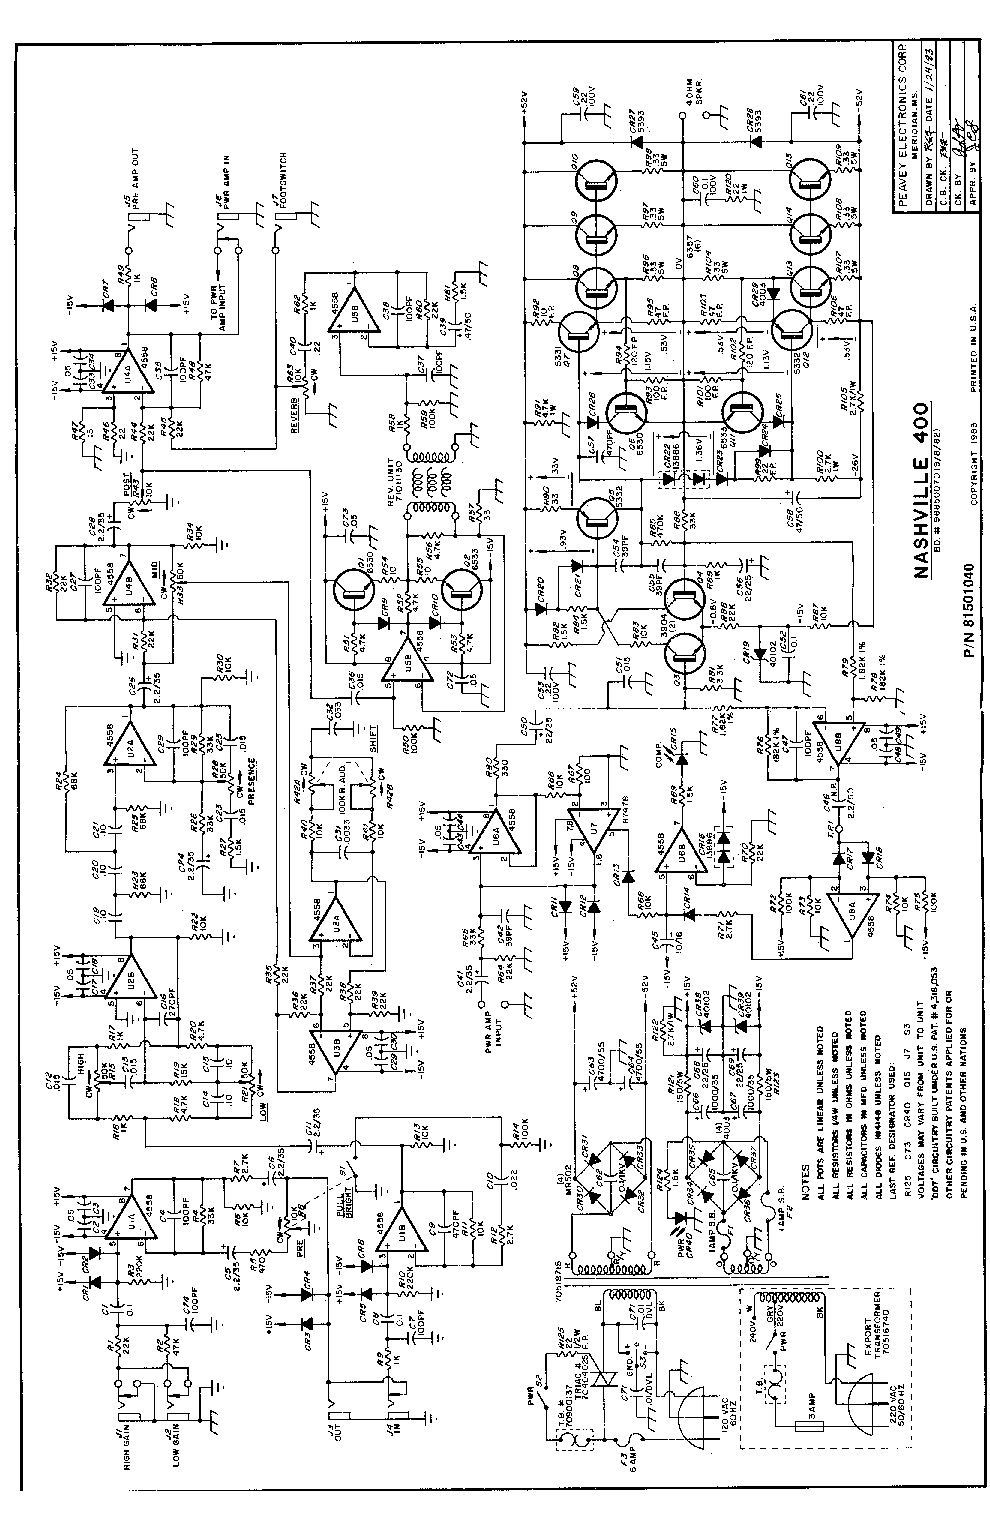 Wiring Diagrams Of Peavey Amp Speakers, Wiring, Get Free